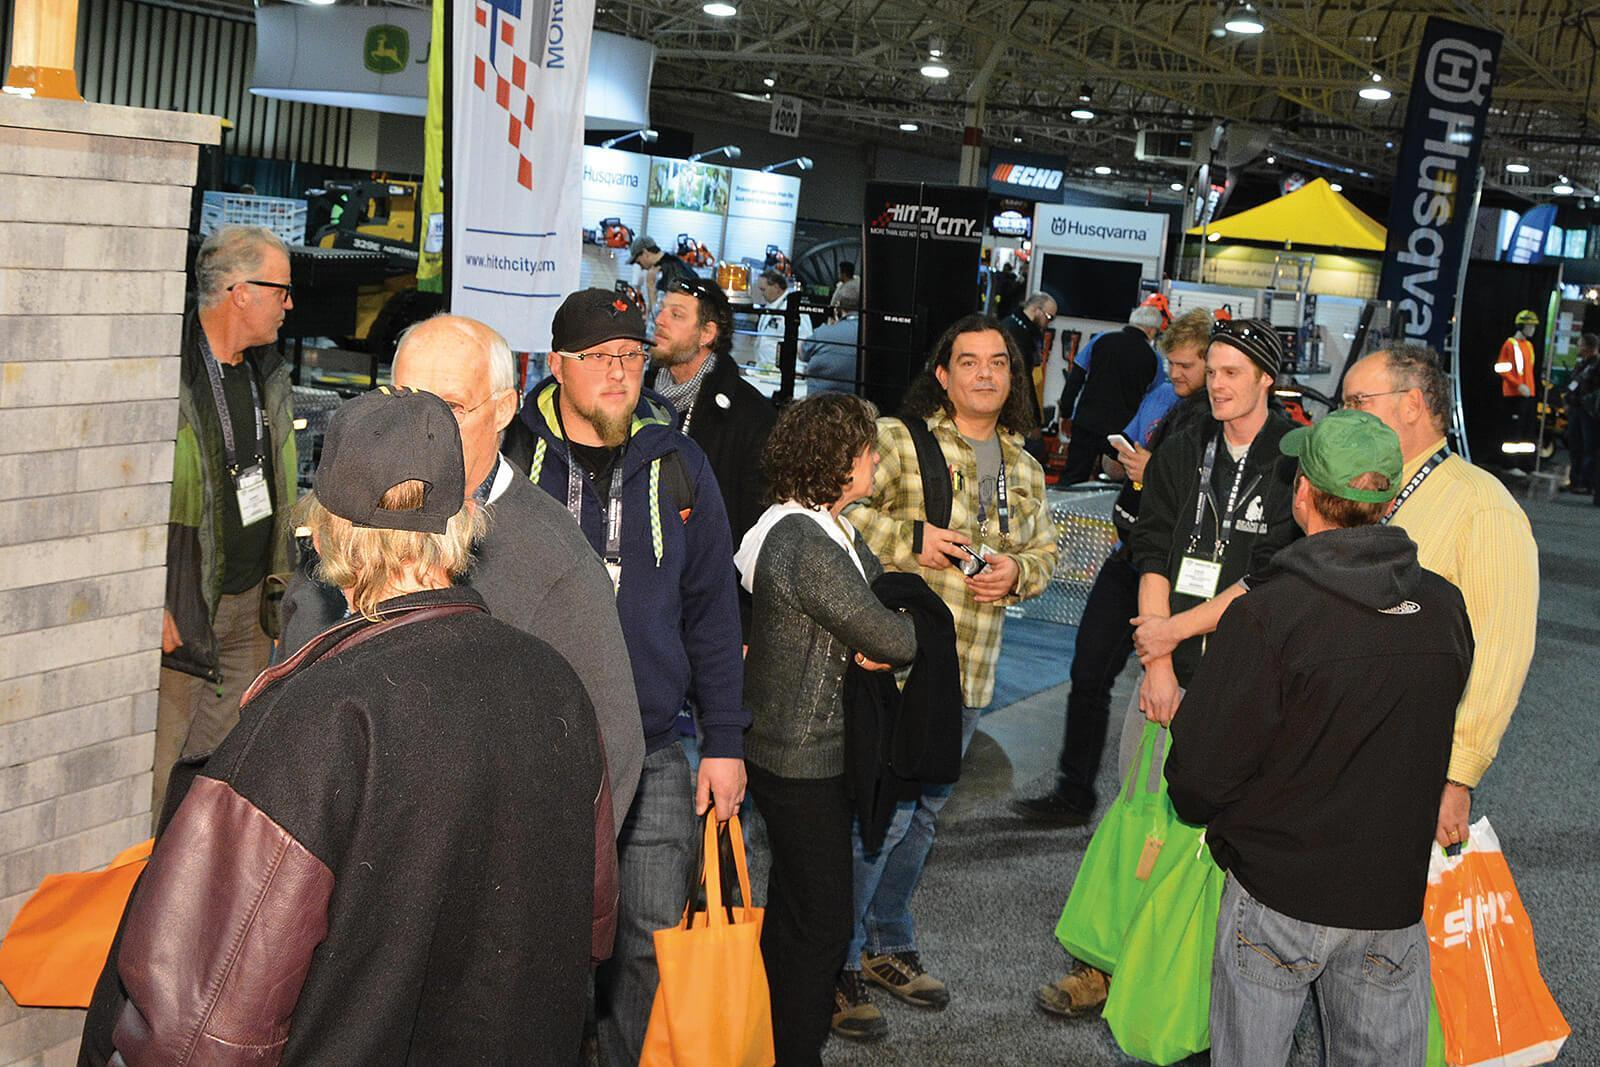 Congress '17 continues to attract landscape professionals from across North America.